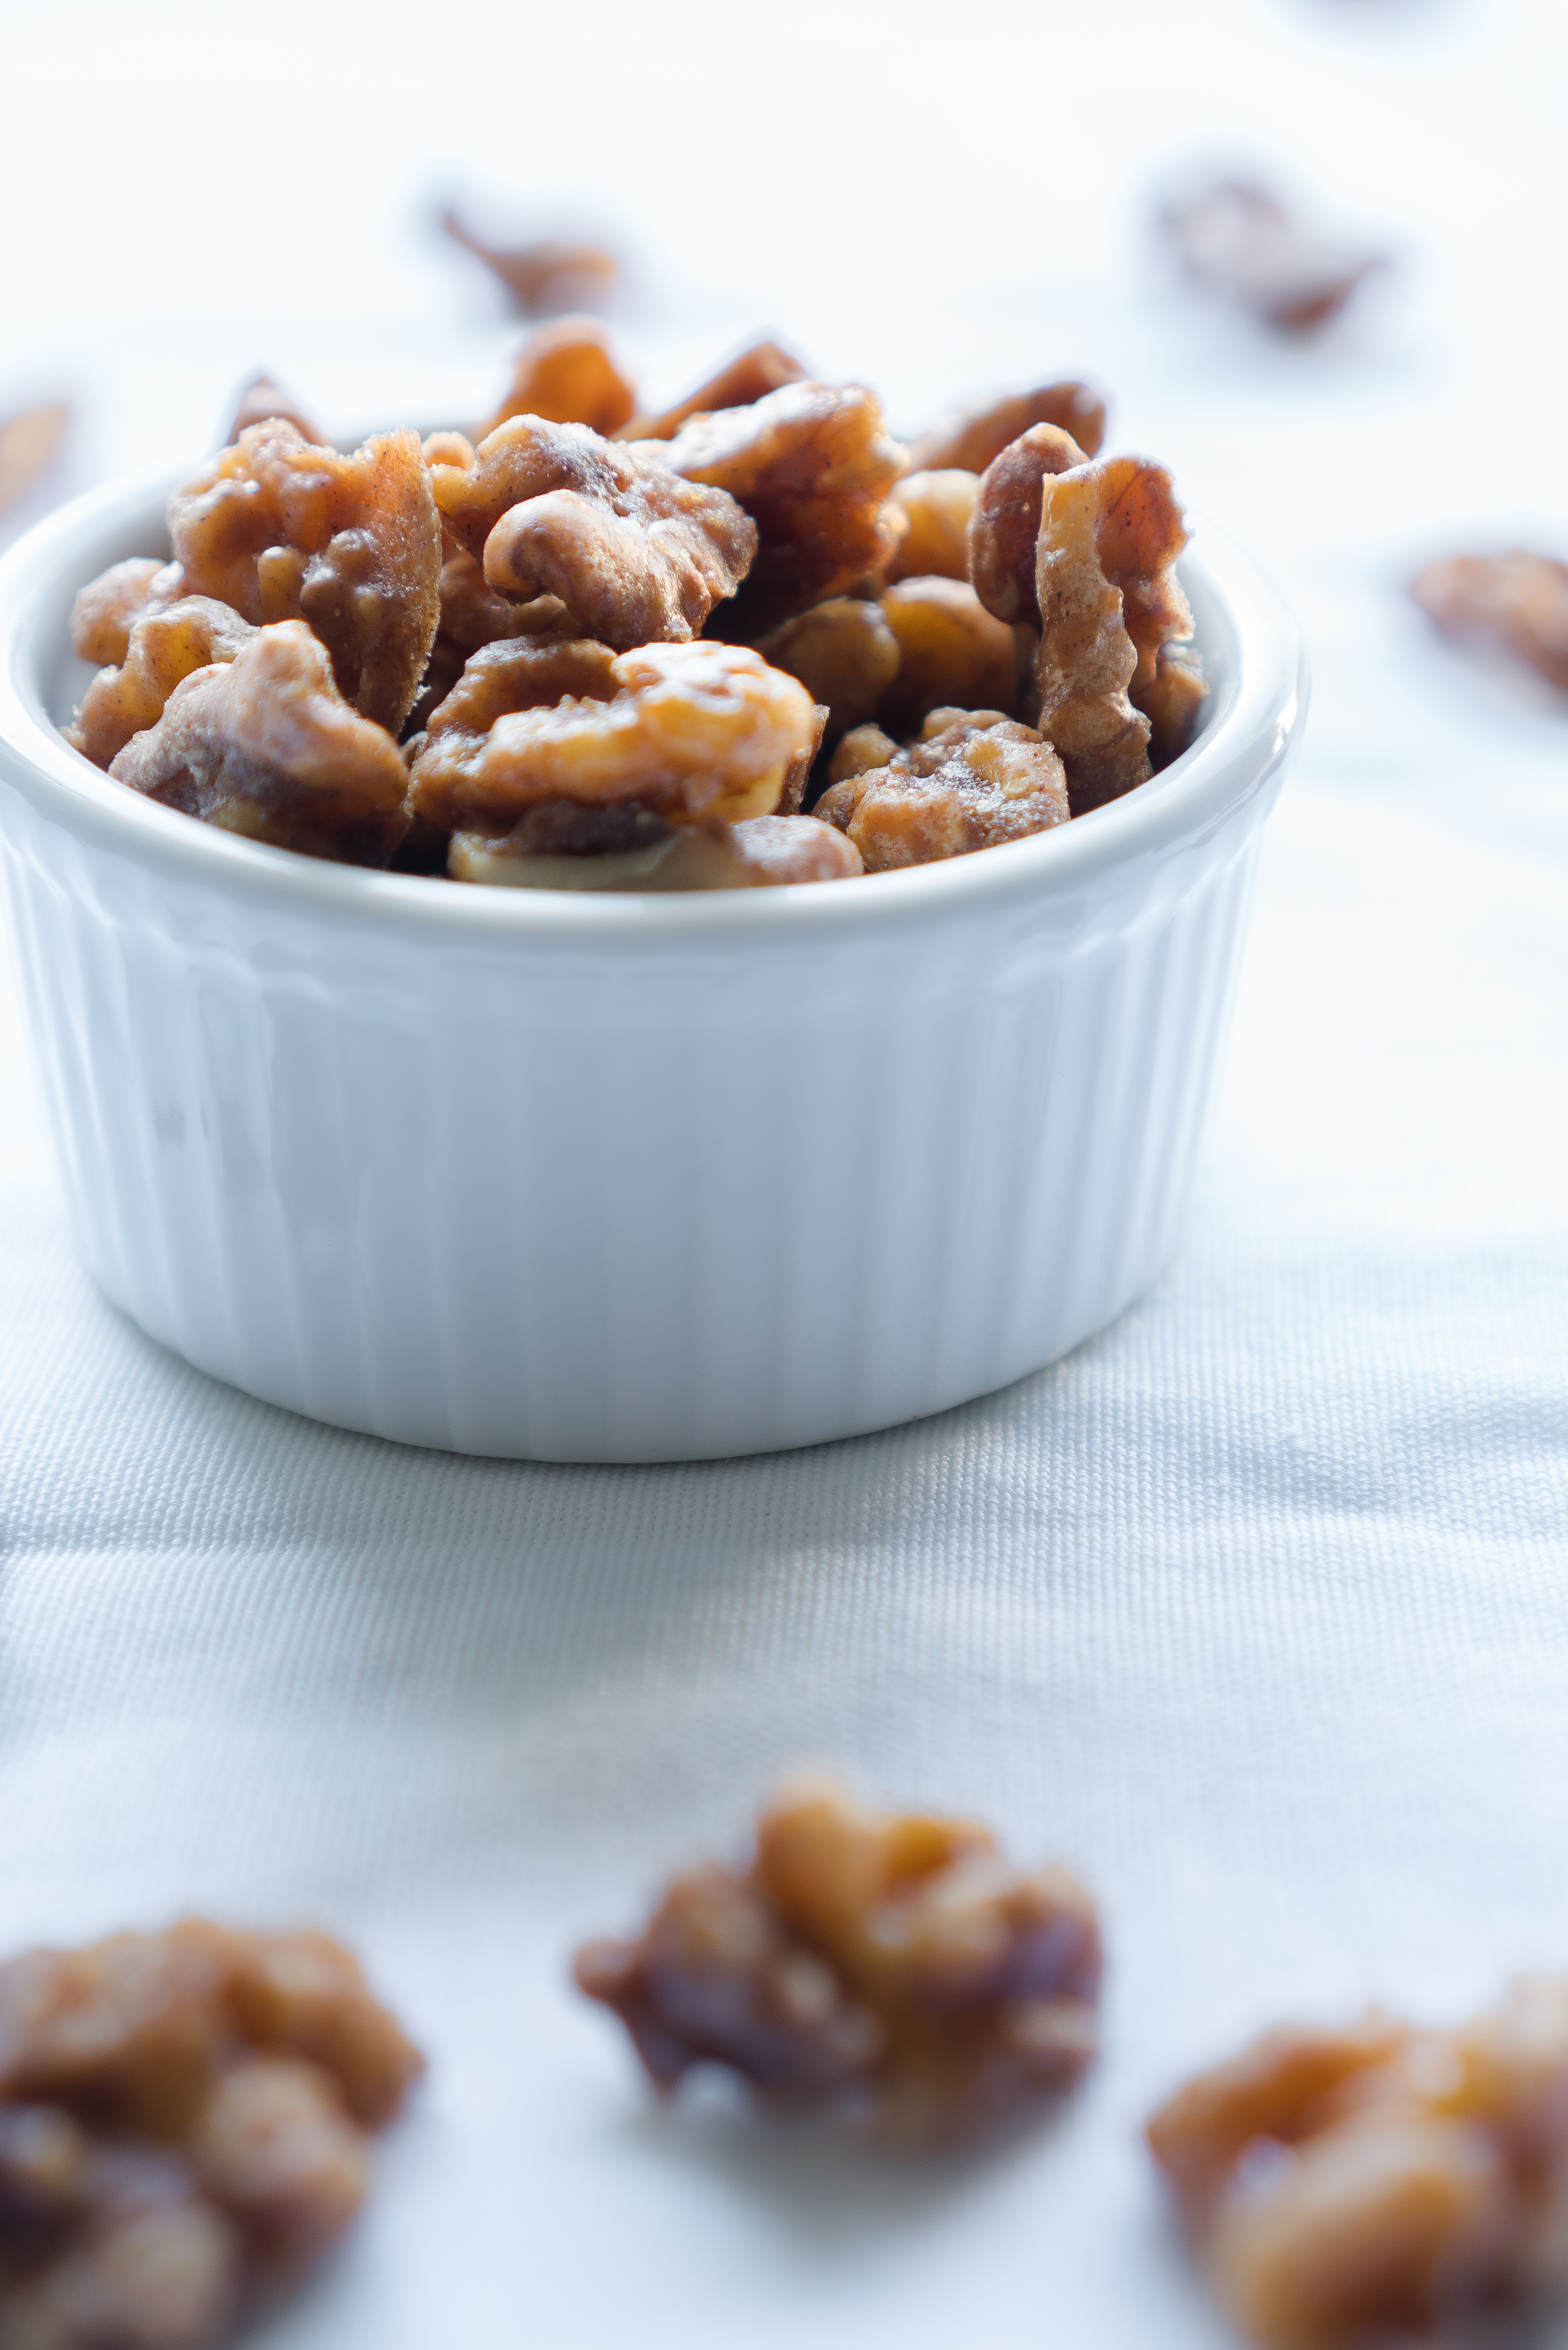 Maple Glazed Walnuts – Easy 5-min recipe for Maple Glazed Walnuts! Naturally sweetened with no added oil using just walnuts, maple syrup, cinnamon, salt, and cayenne. Enjoy as a topping for salads, yogurt parfaits, or as a snack all on their own! ♥ | freeyourfork.com